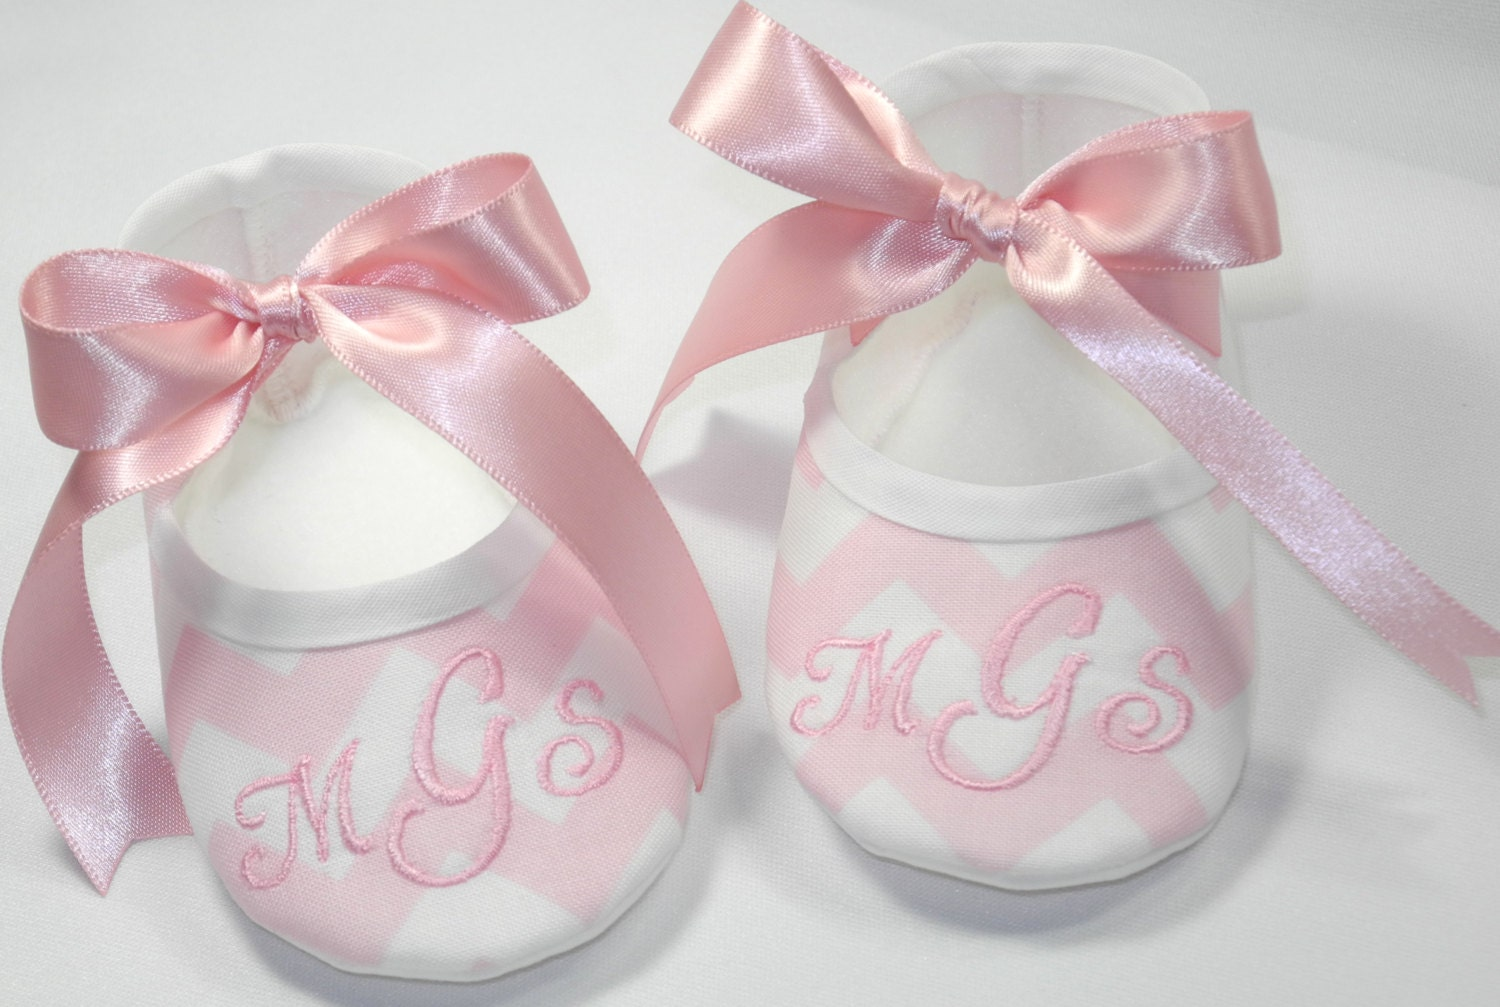 Chevron Baby Shoes Monogrammed Baby Shoes Personalized Baby